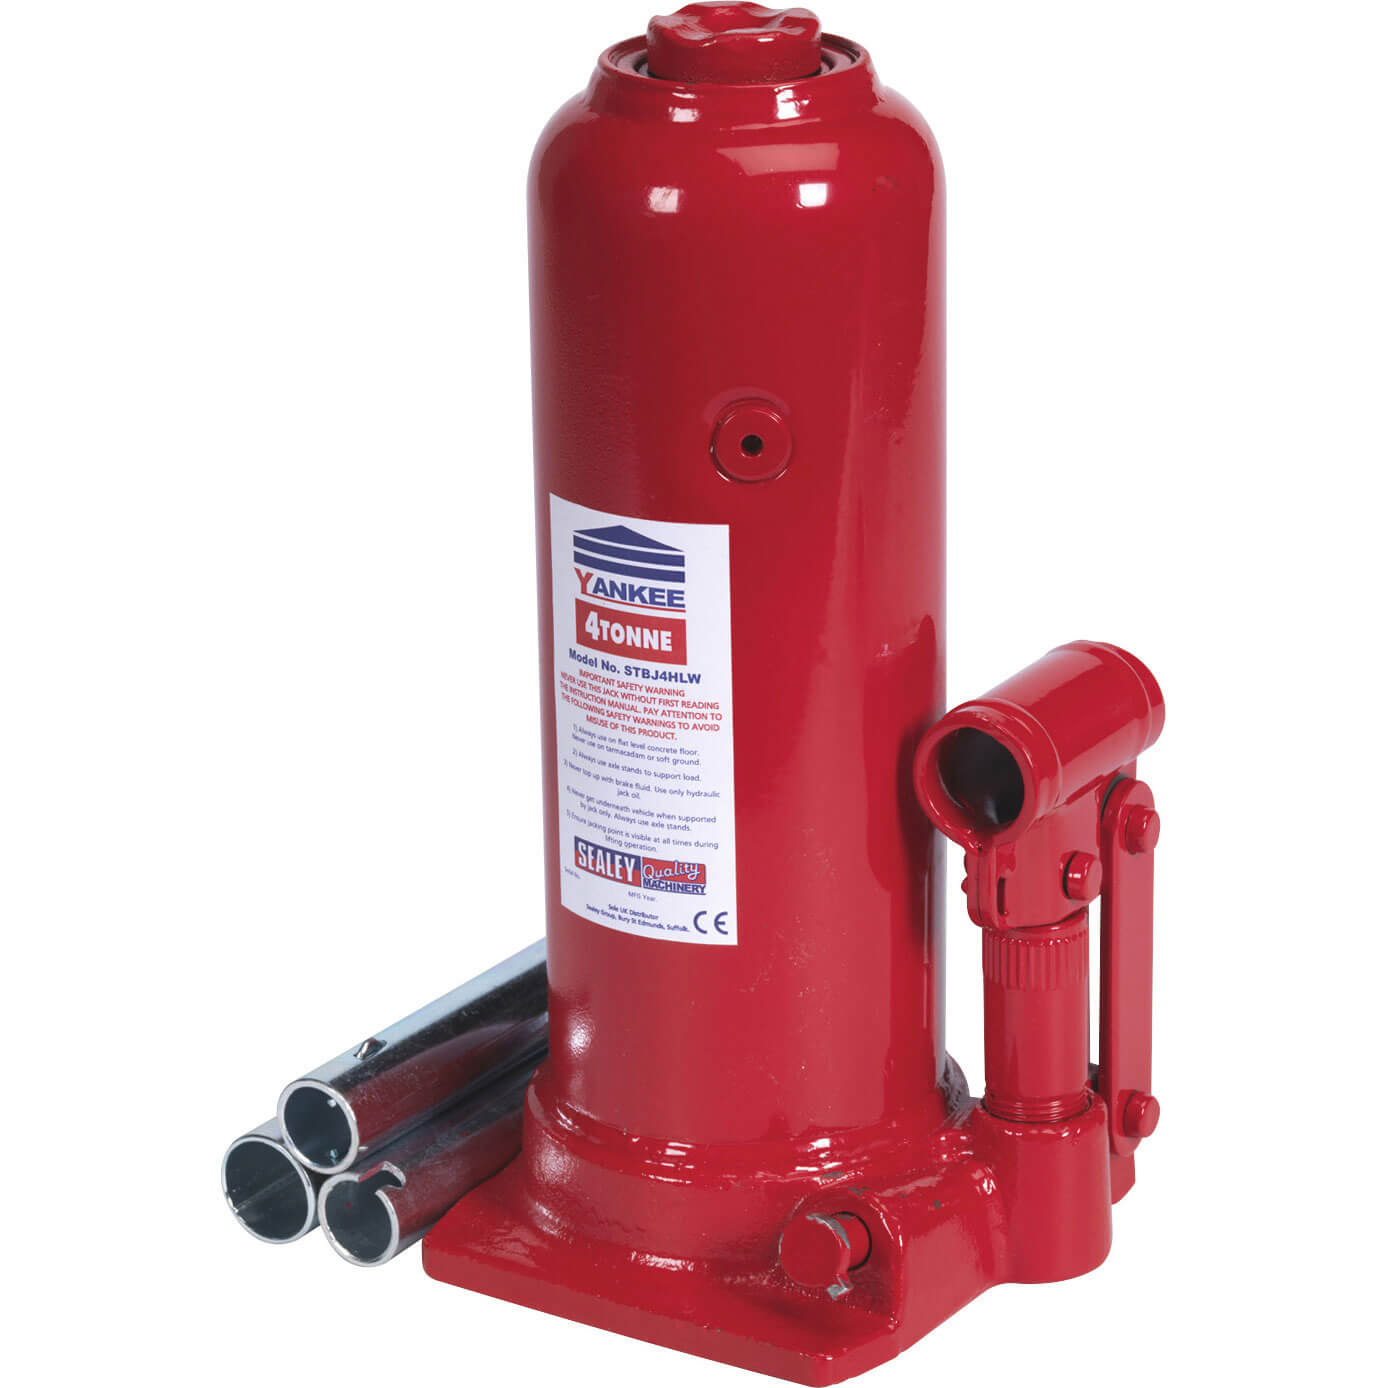 Image of Sealey Hydraulic Telescopic High Lift Yankee Bottle Jack 4 Tonne